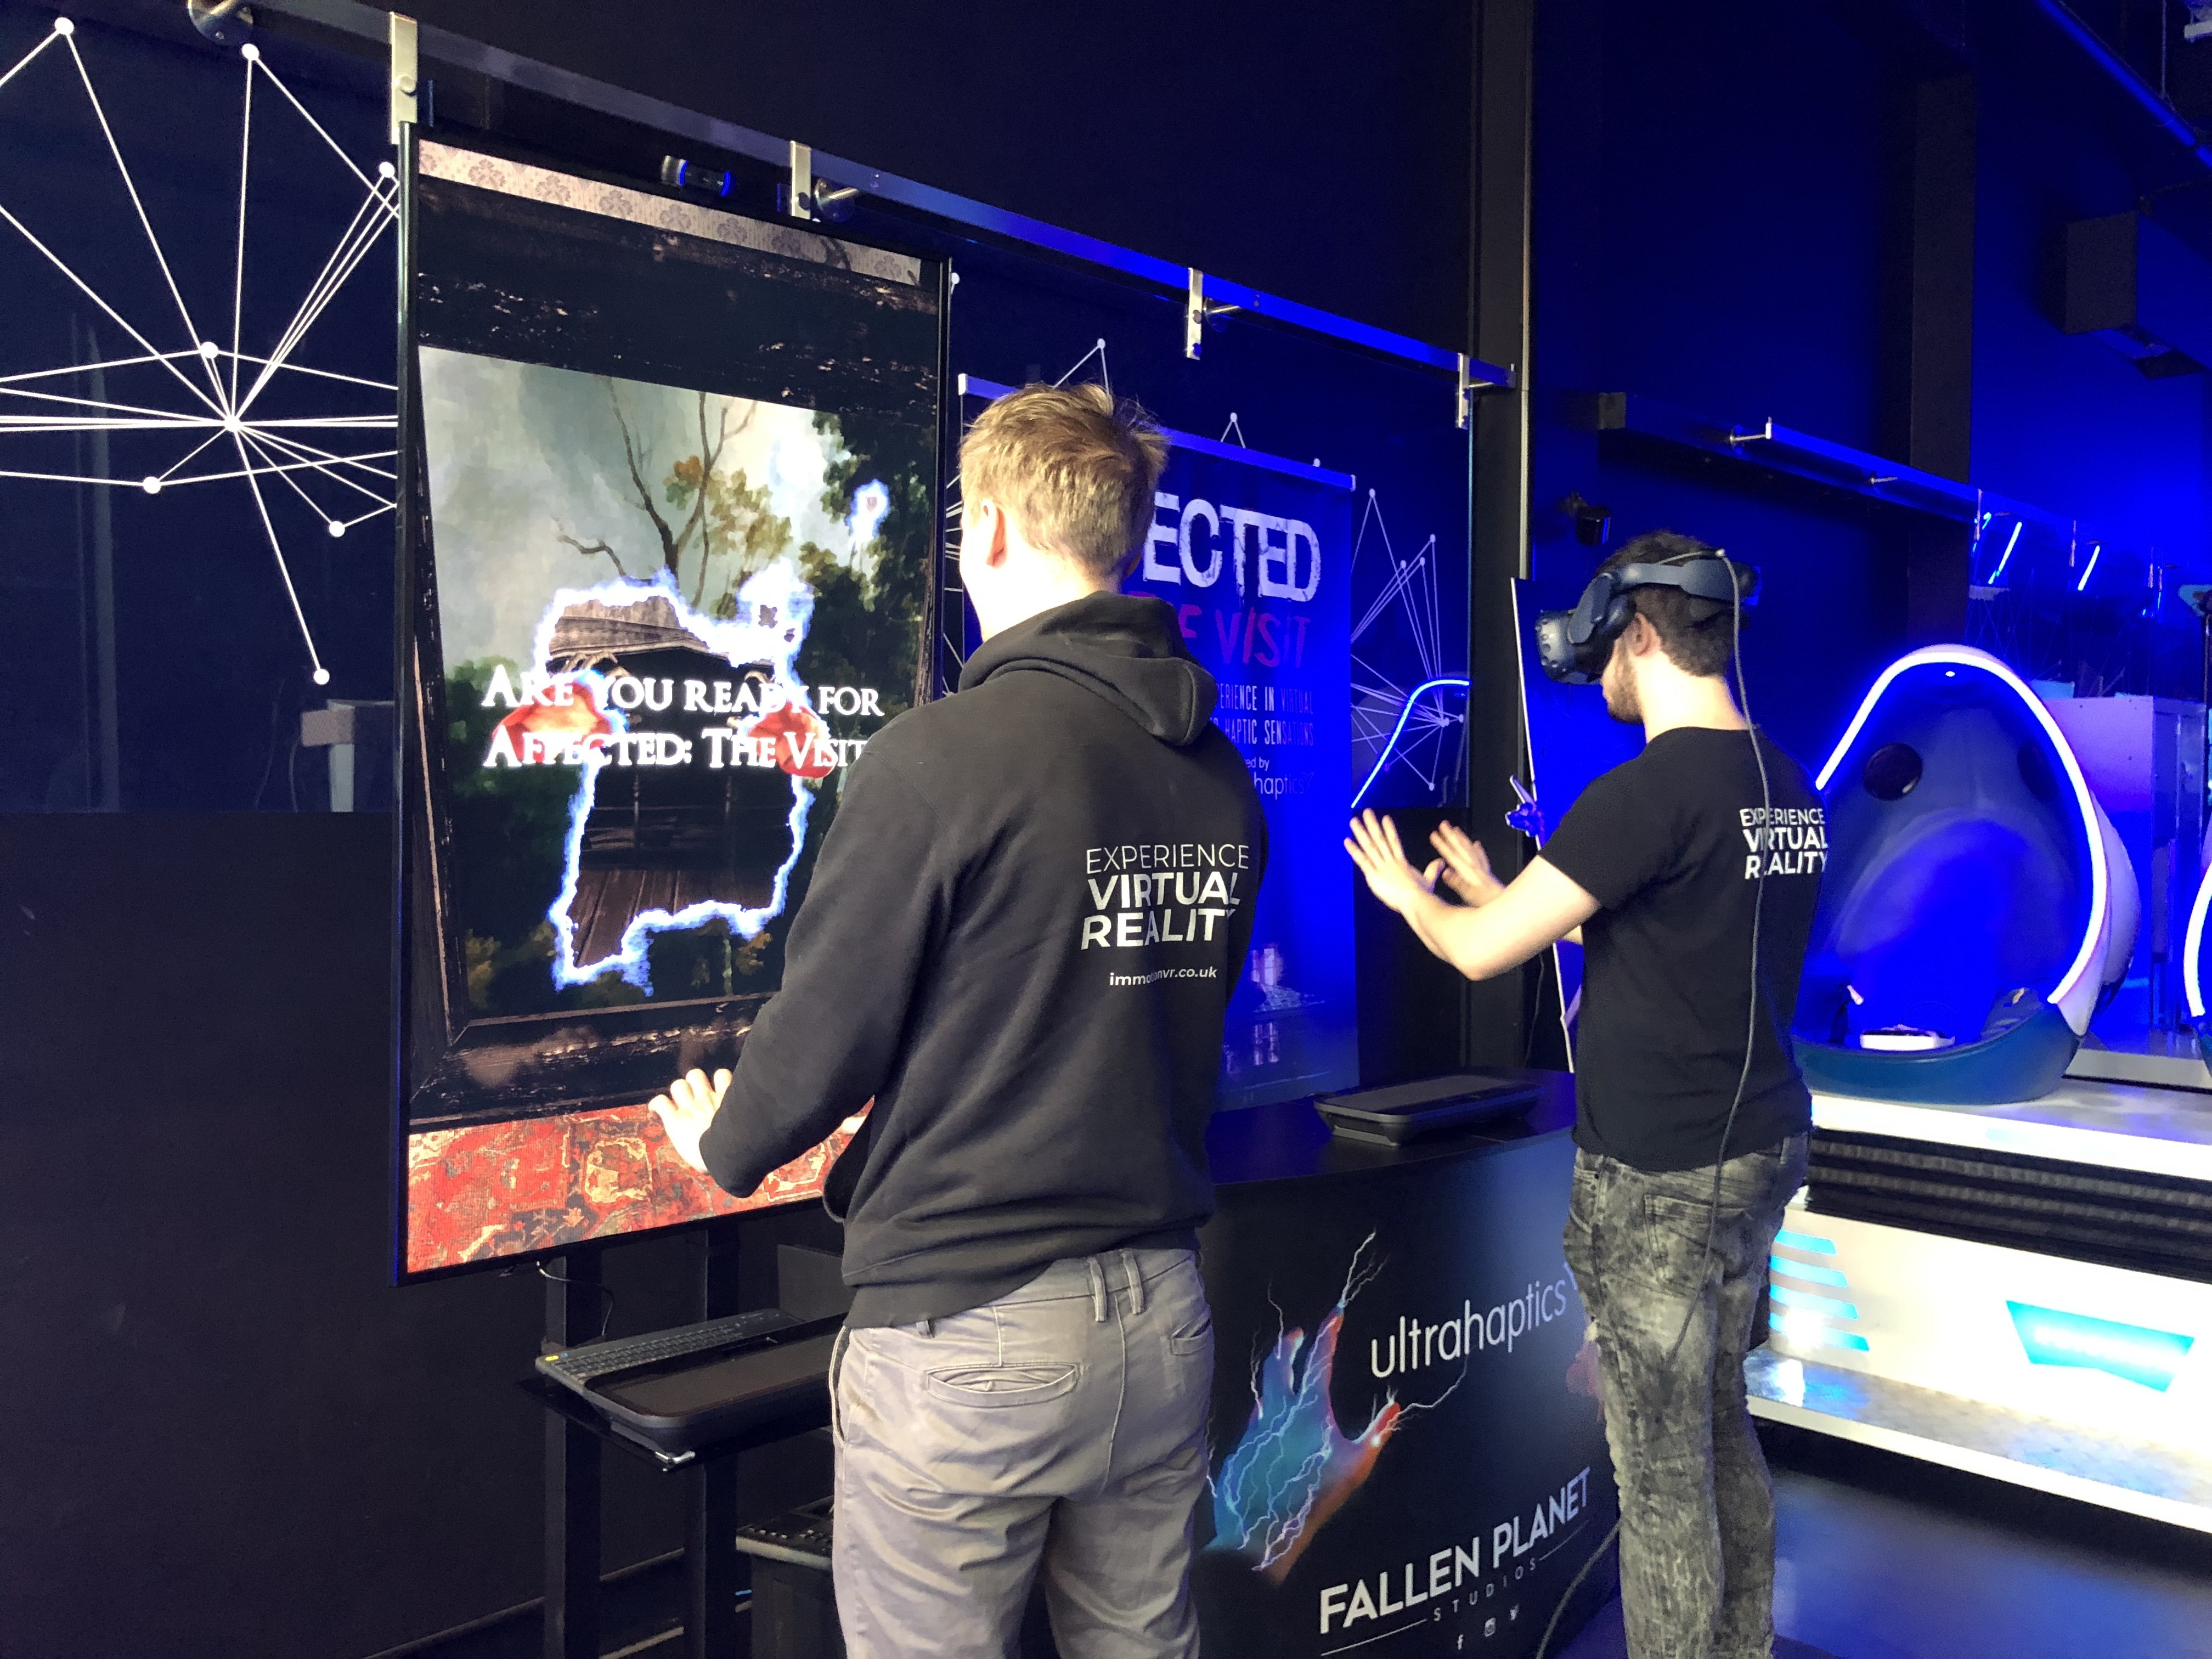 Ultrahaptics, Fallen Planet Studios and Immotion VR team up to create a new kind of VR experience